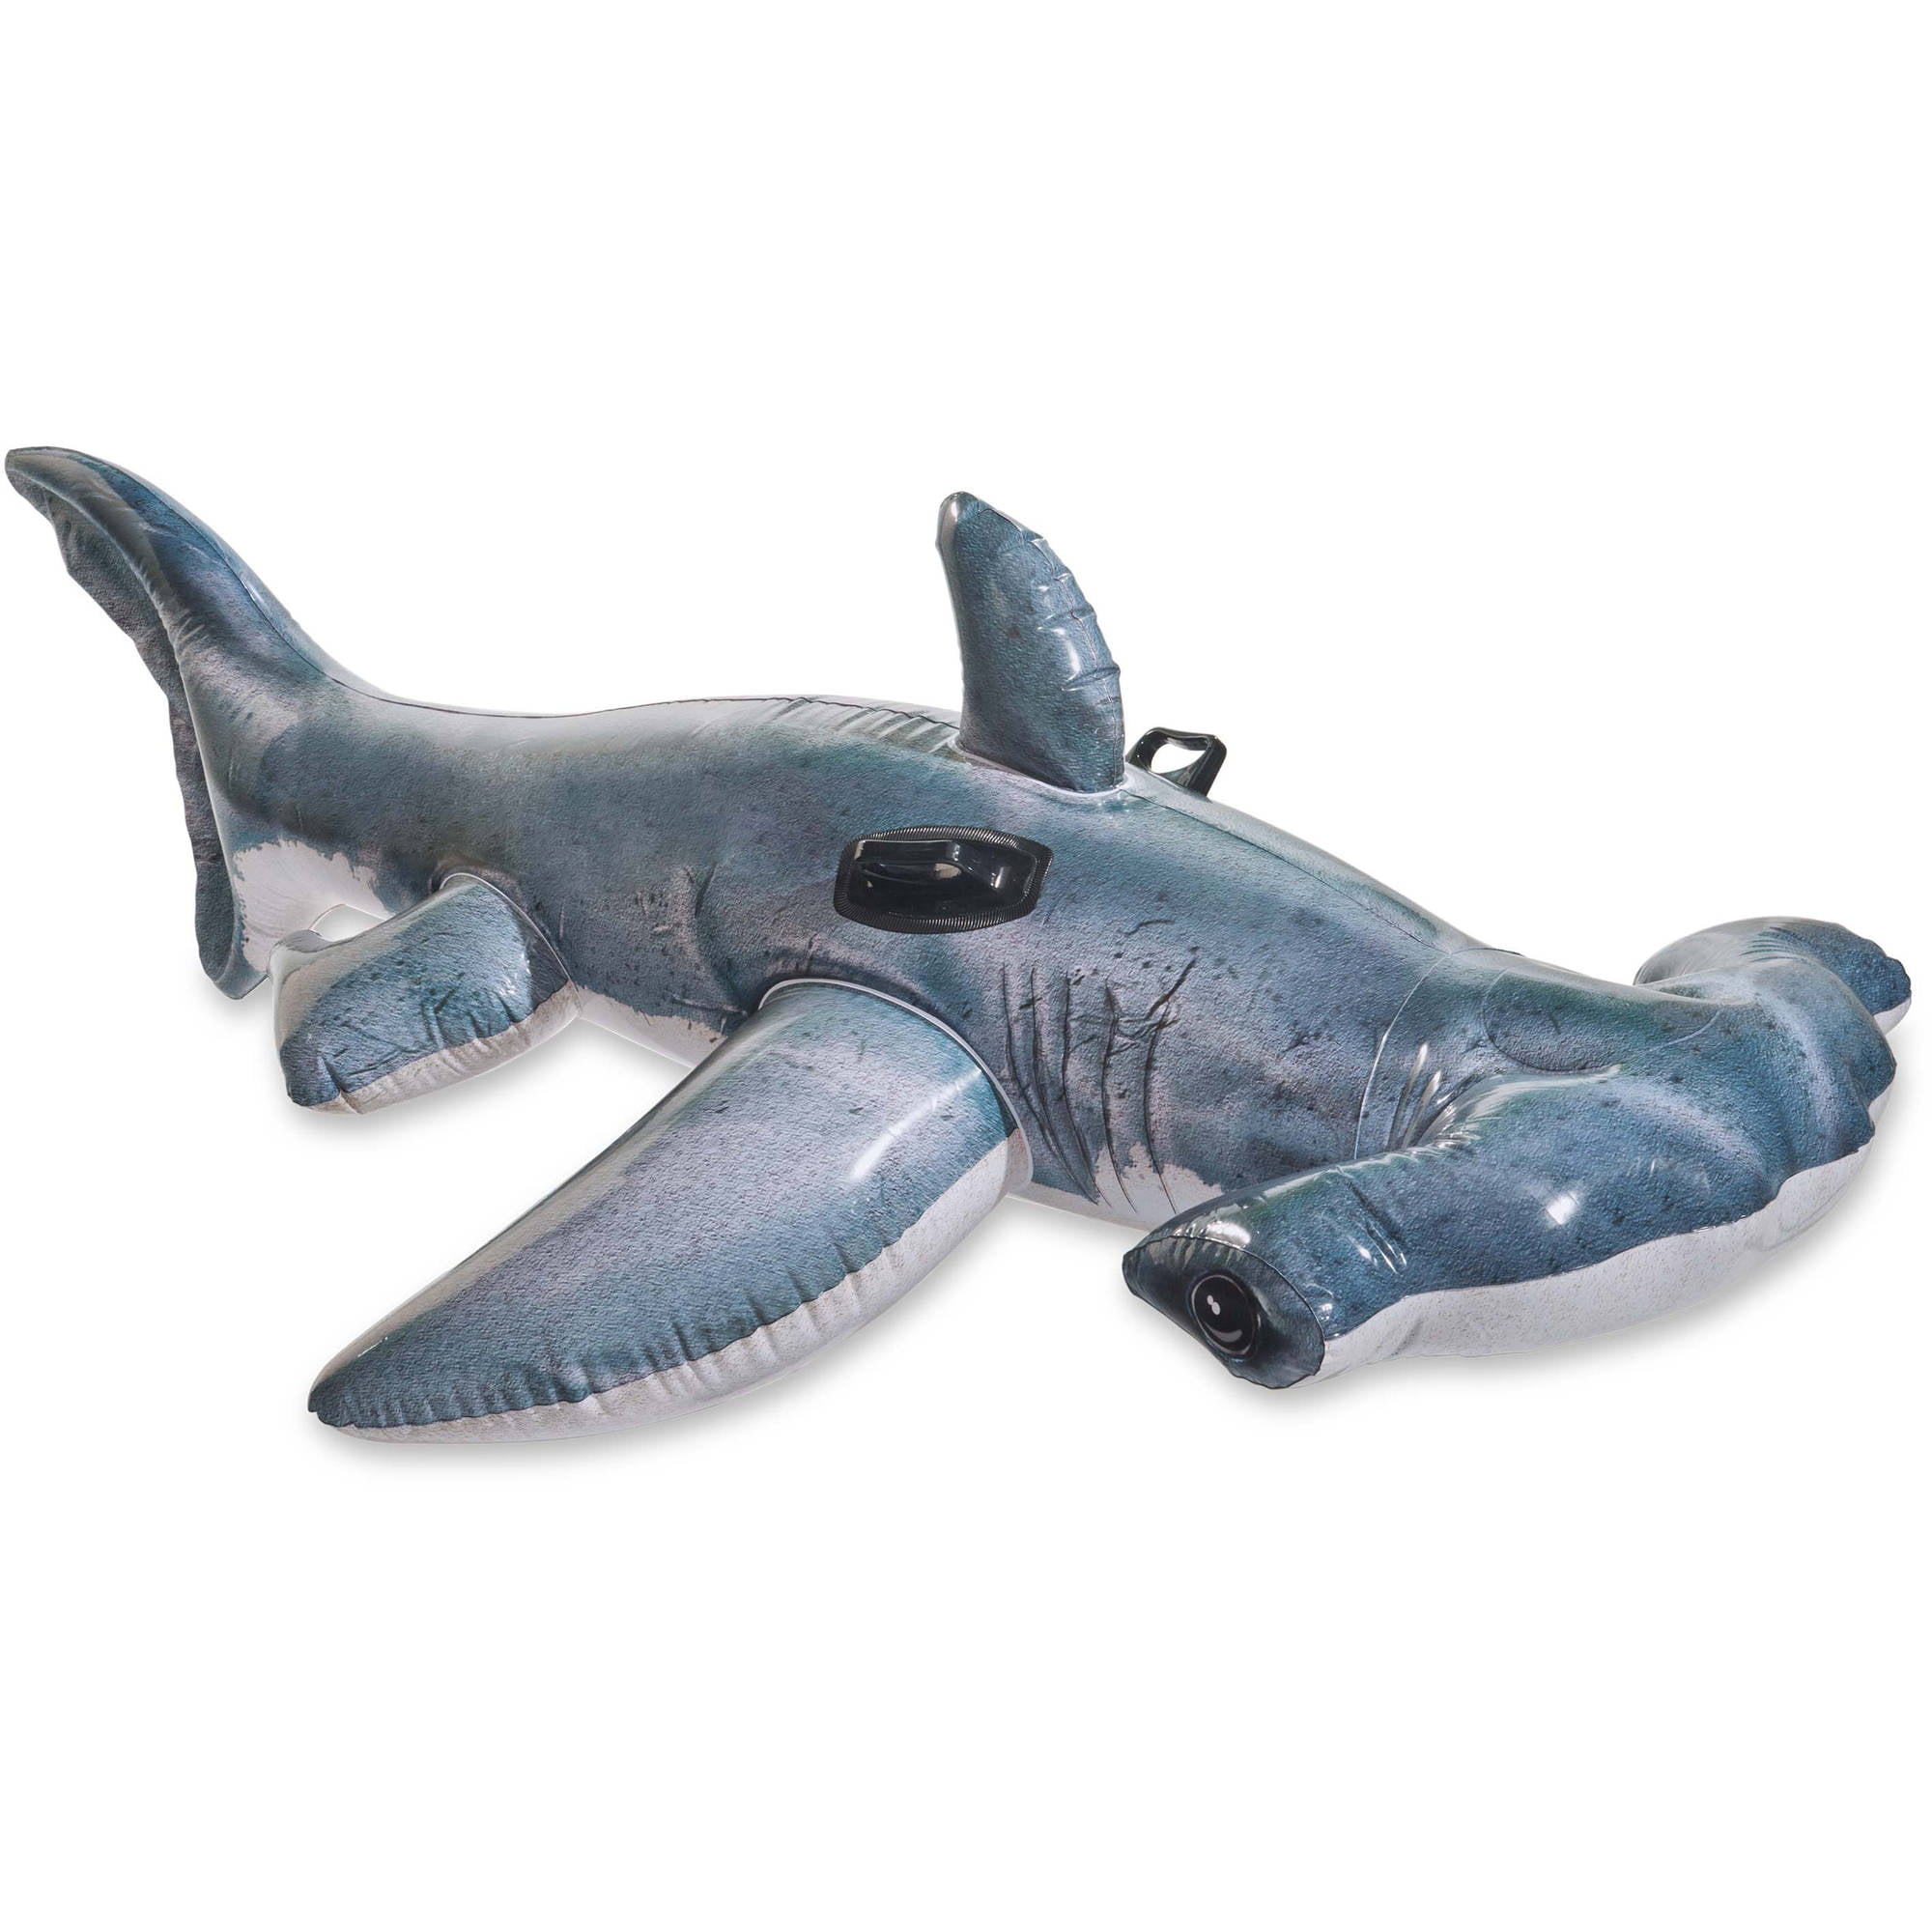 shark hammerhead com sizes multiple costume pet ip available halloween walmart animal necklace